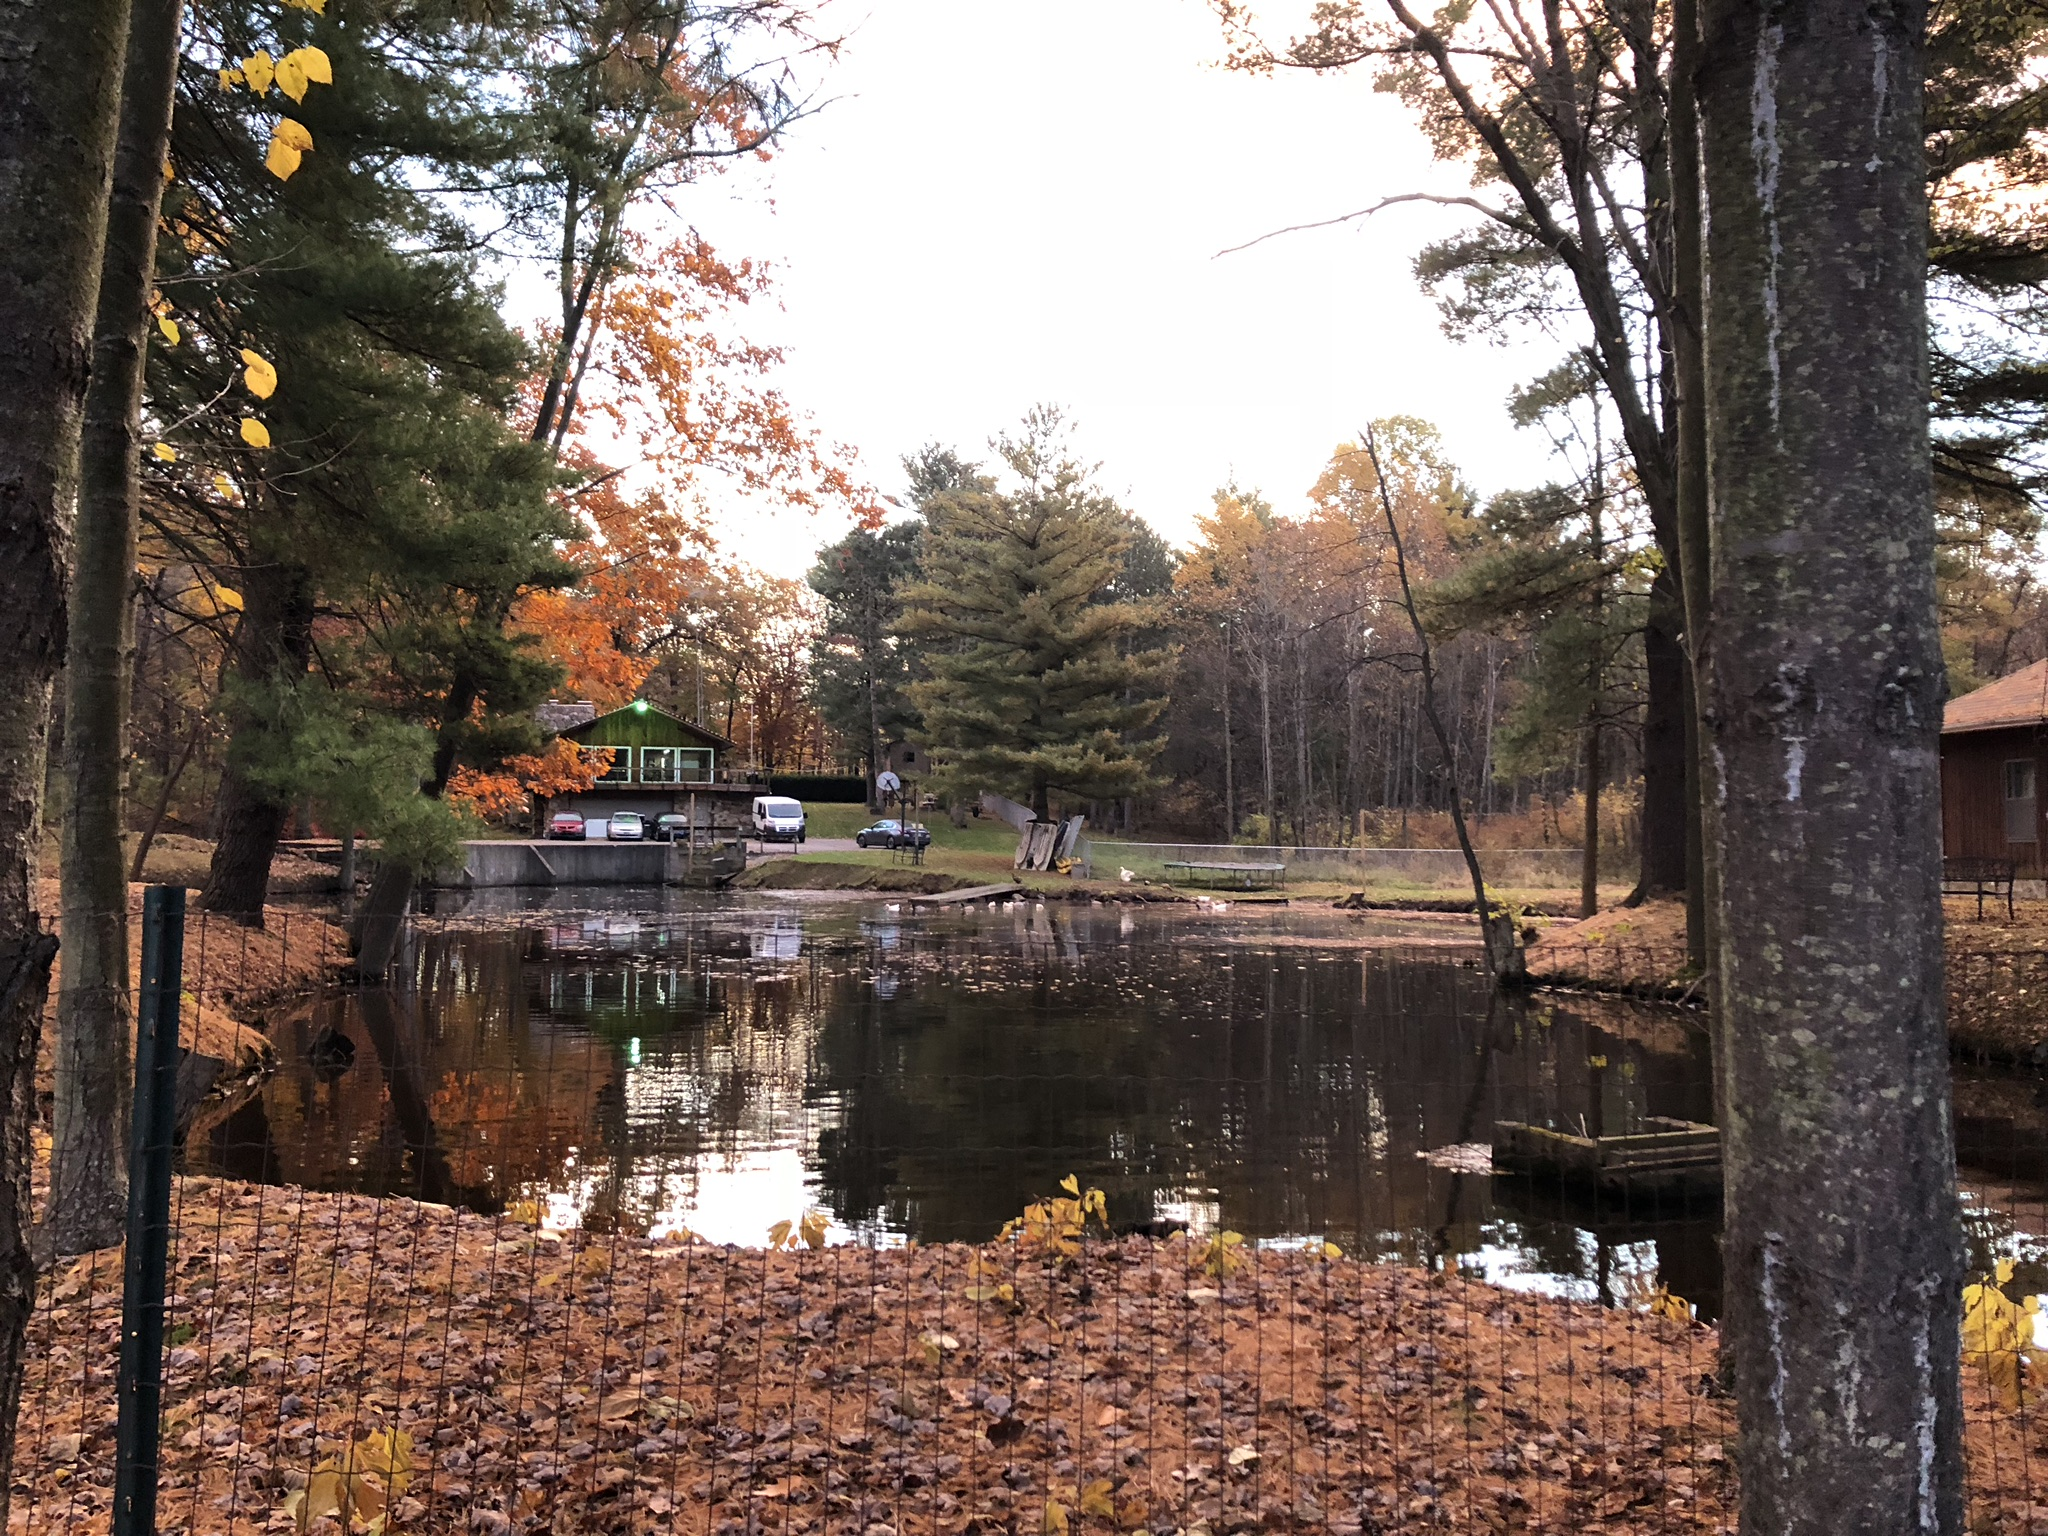 The campsite overlooks a little lake where ducks play.